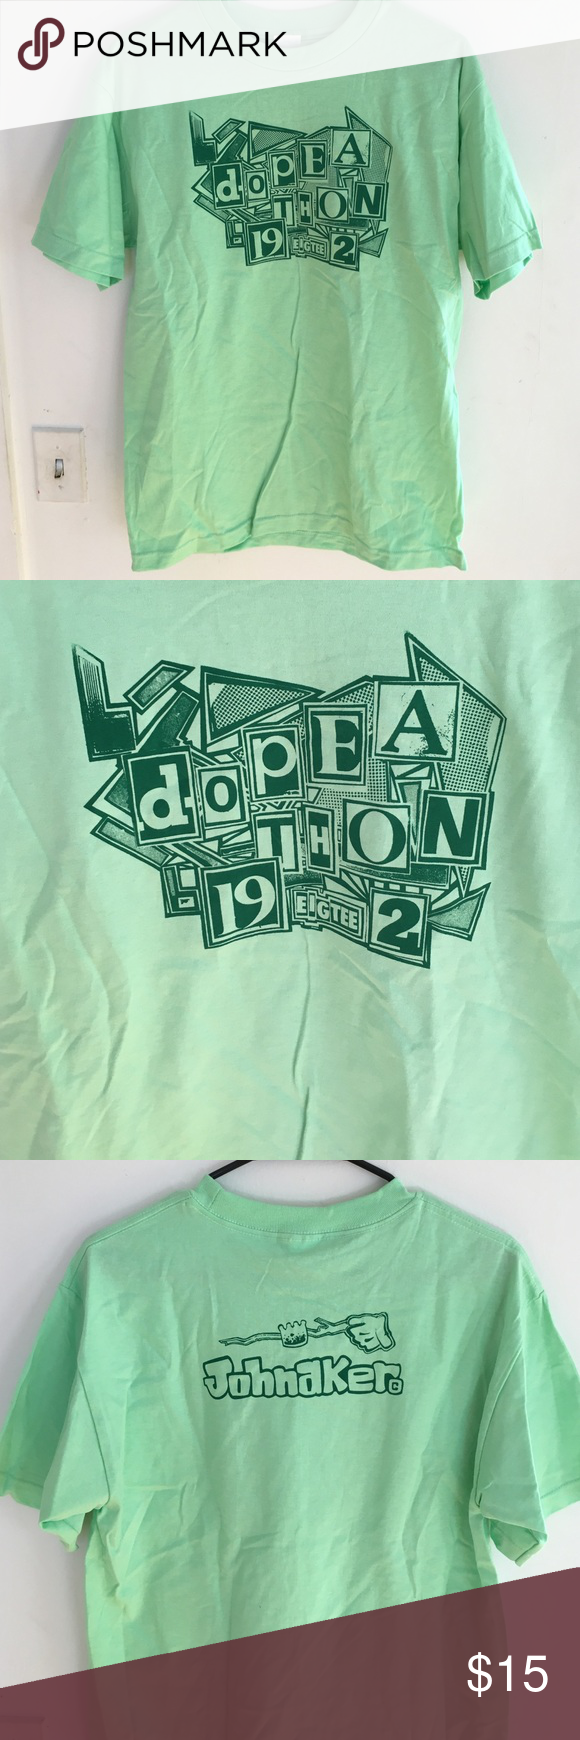 "DOPE-A-THON 19 EIGHTEE-TWO Tshirt ""If anyone wants to know what the definition of 'dope' means, it's: 'Definition of Public Enemy.'""  Brand New, original design by Johnaker Propaganda Company. Johnaker Propaganda Company Shirts Tees - Short Sleeve"